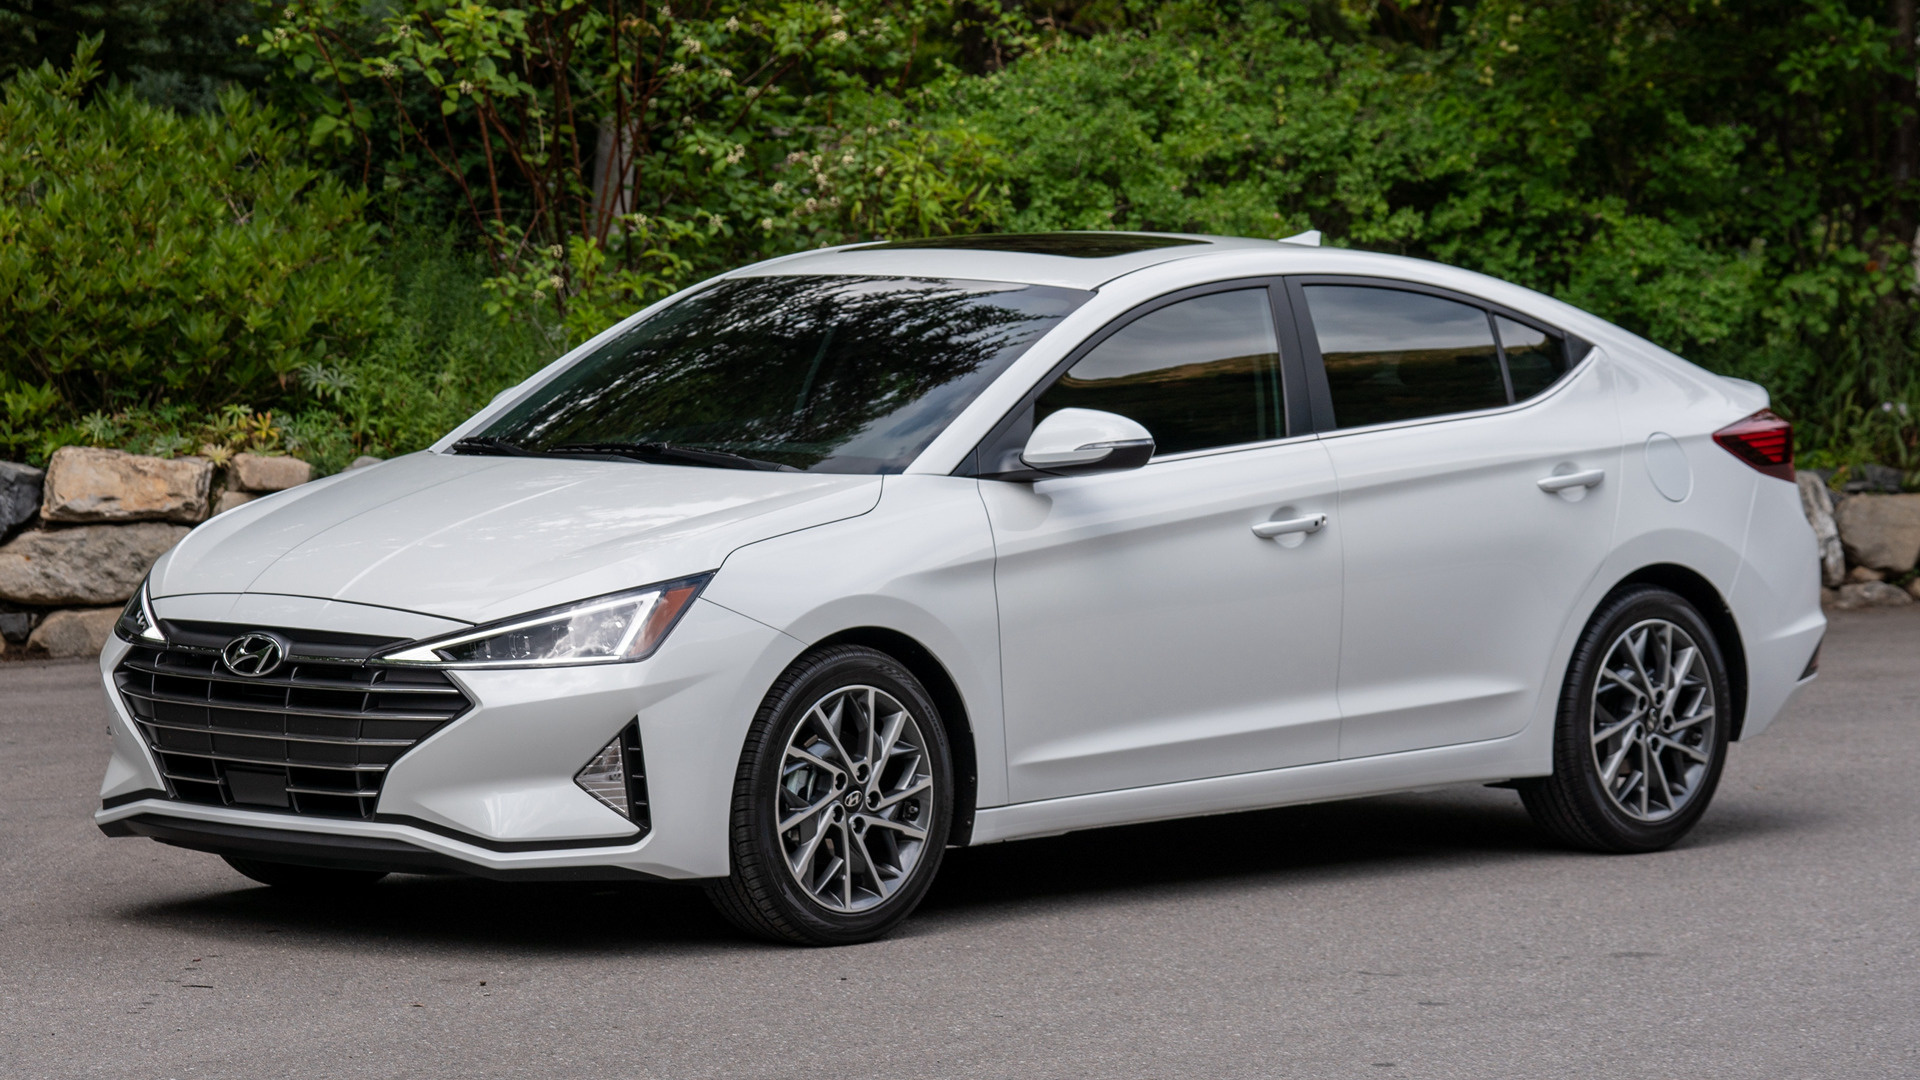 Hyundai Elantra (2019) Wallpapers and HD Images - Car Pixel